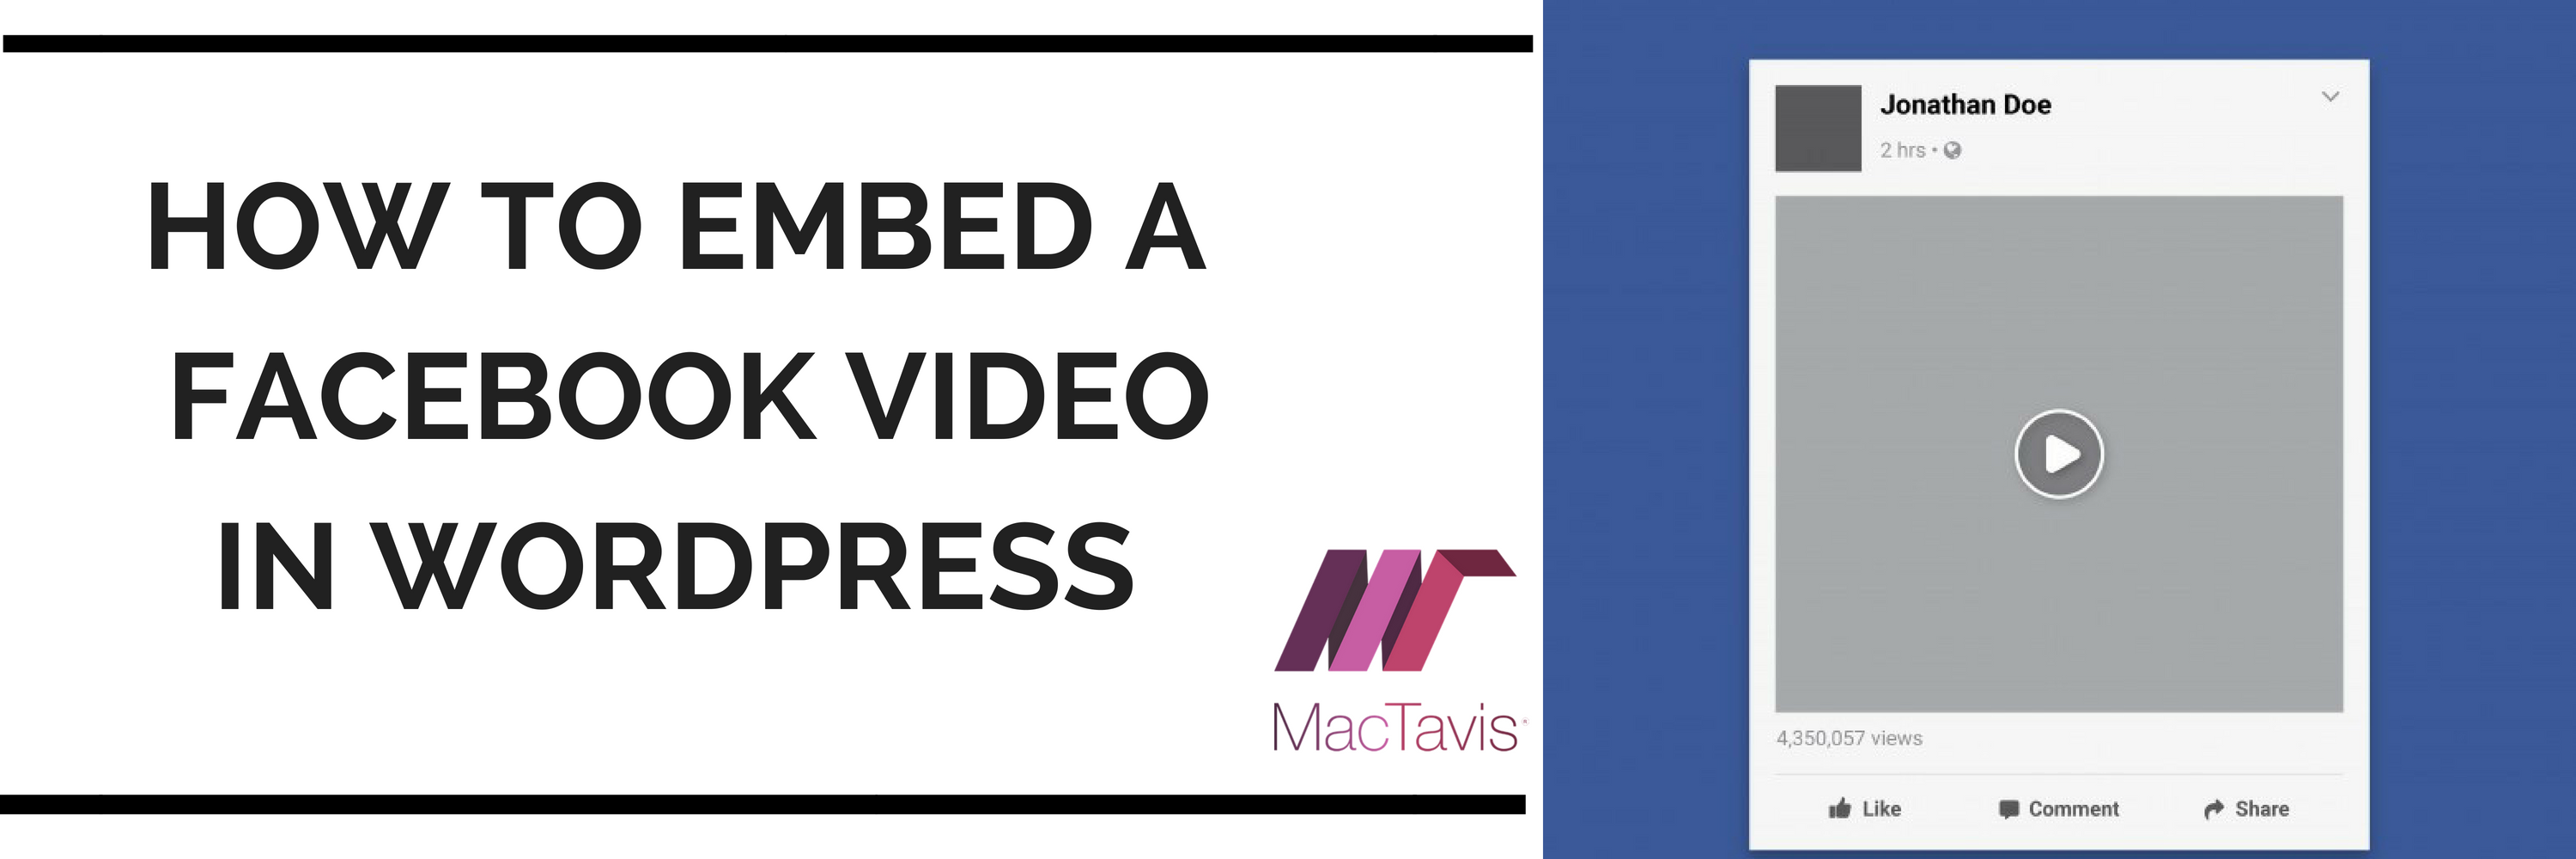 Step-by-step guide on How to Embed a Facebook Video in WordPress